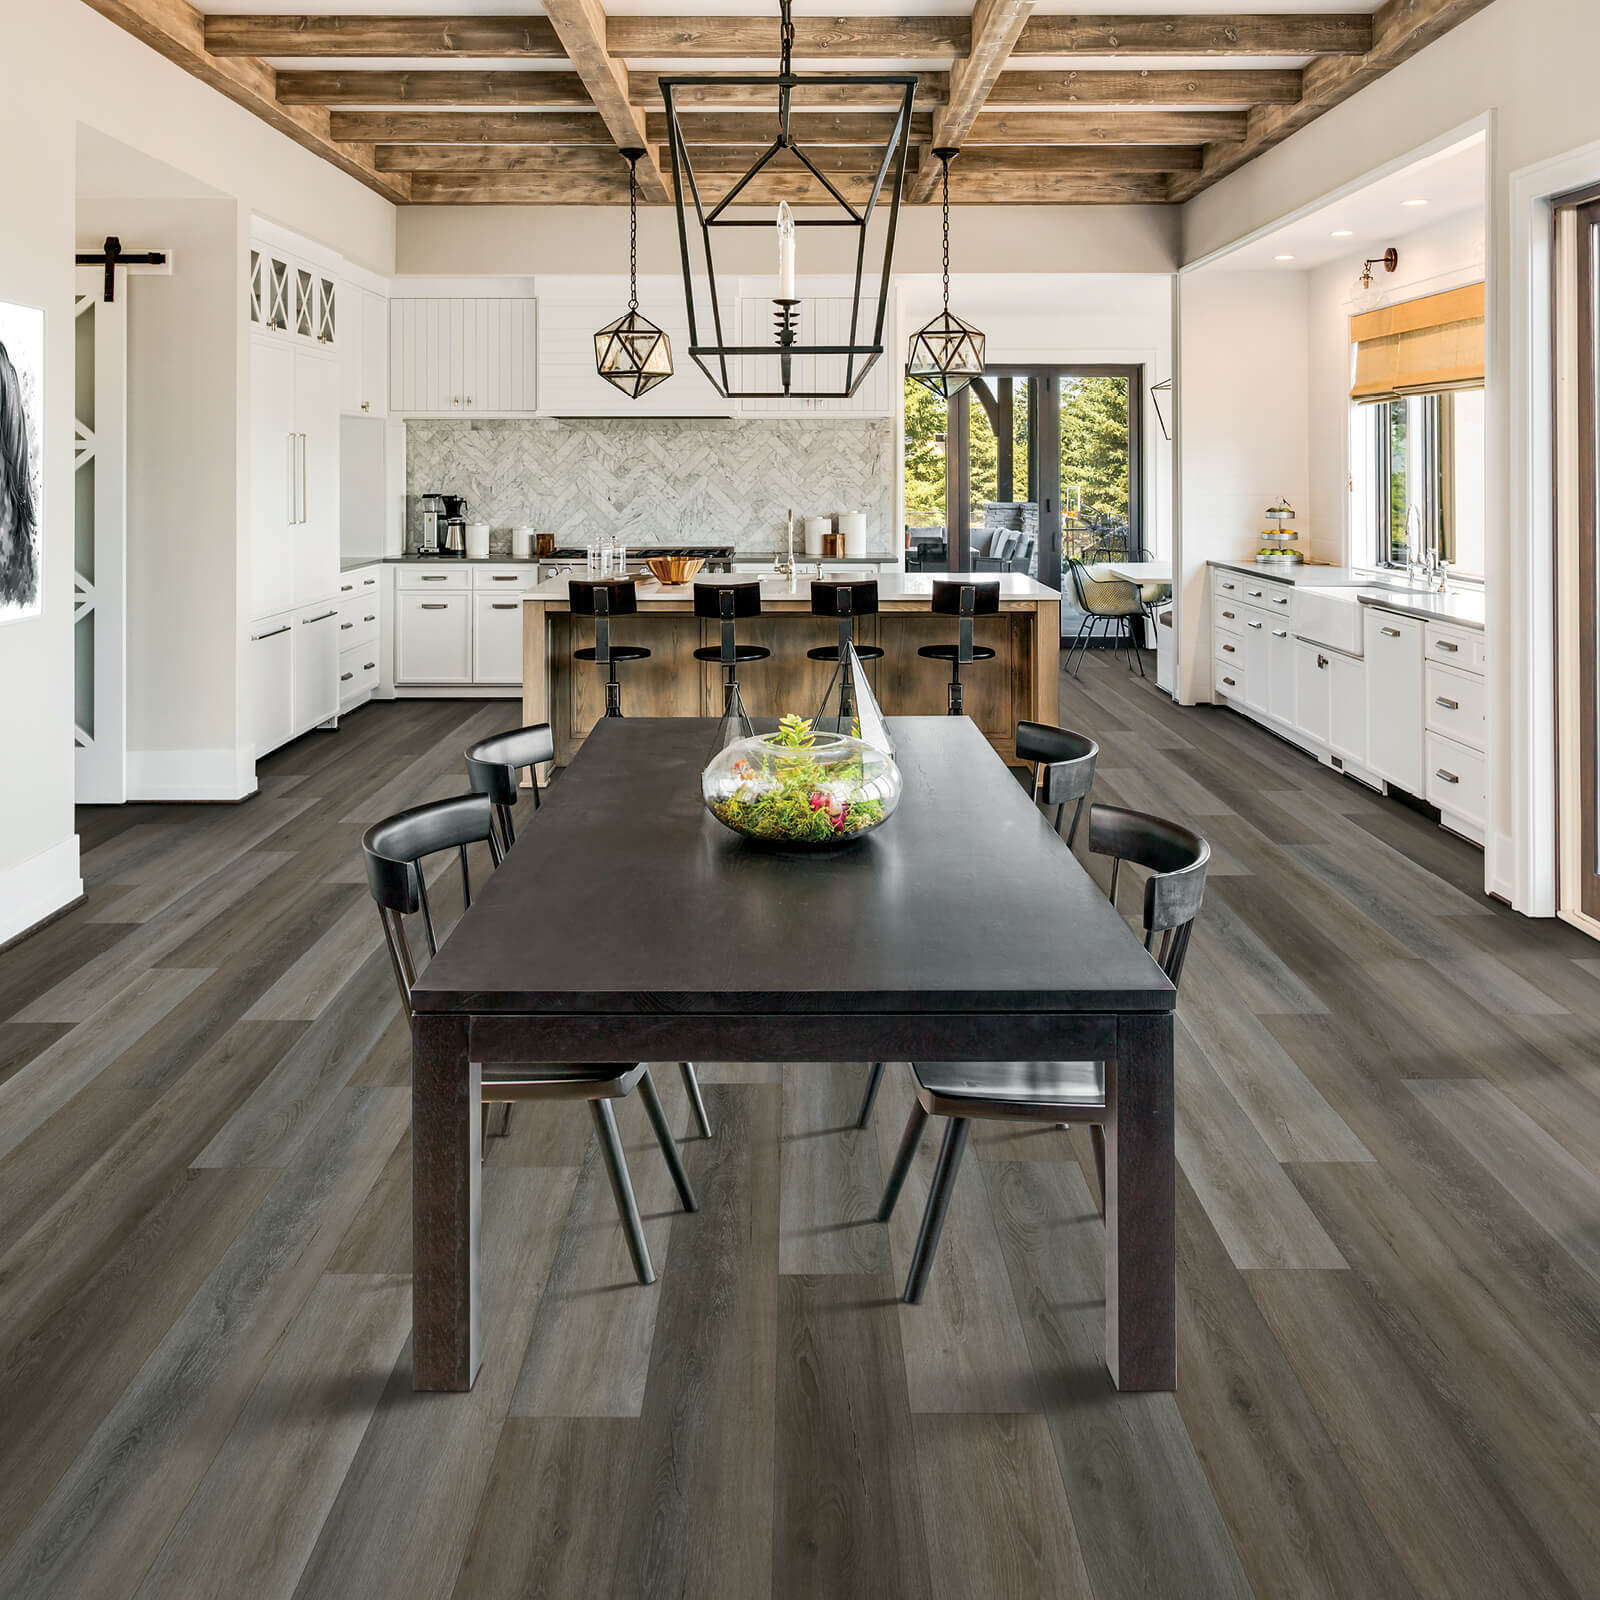 Laminate Flooring in DIning Room | Carpets And More, Inc